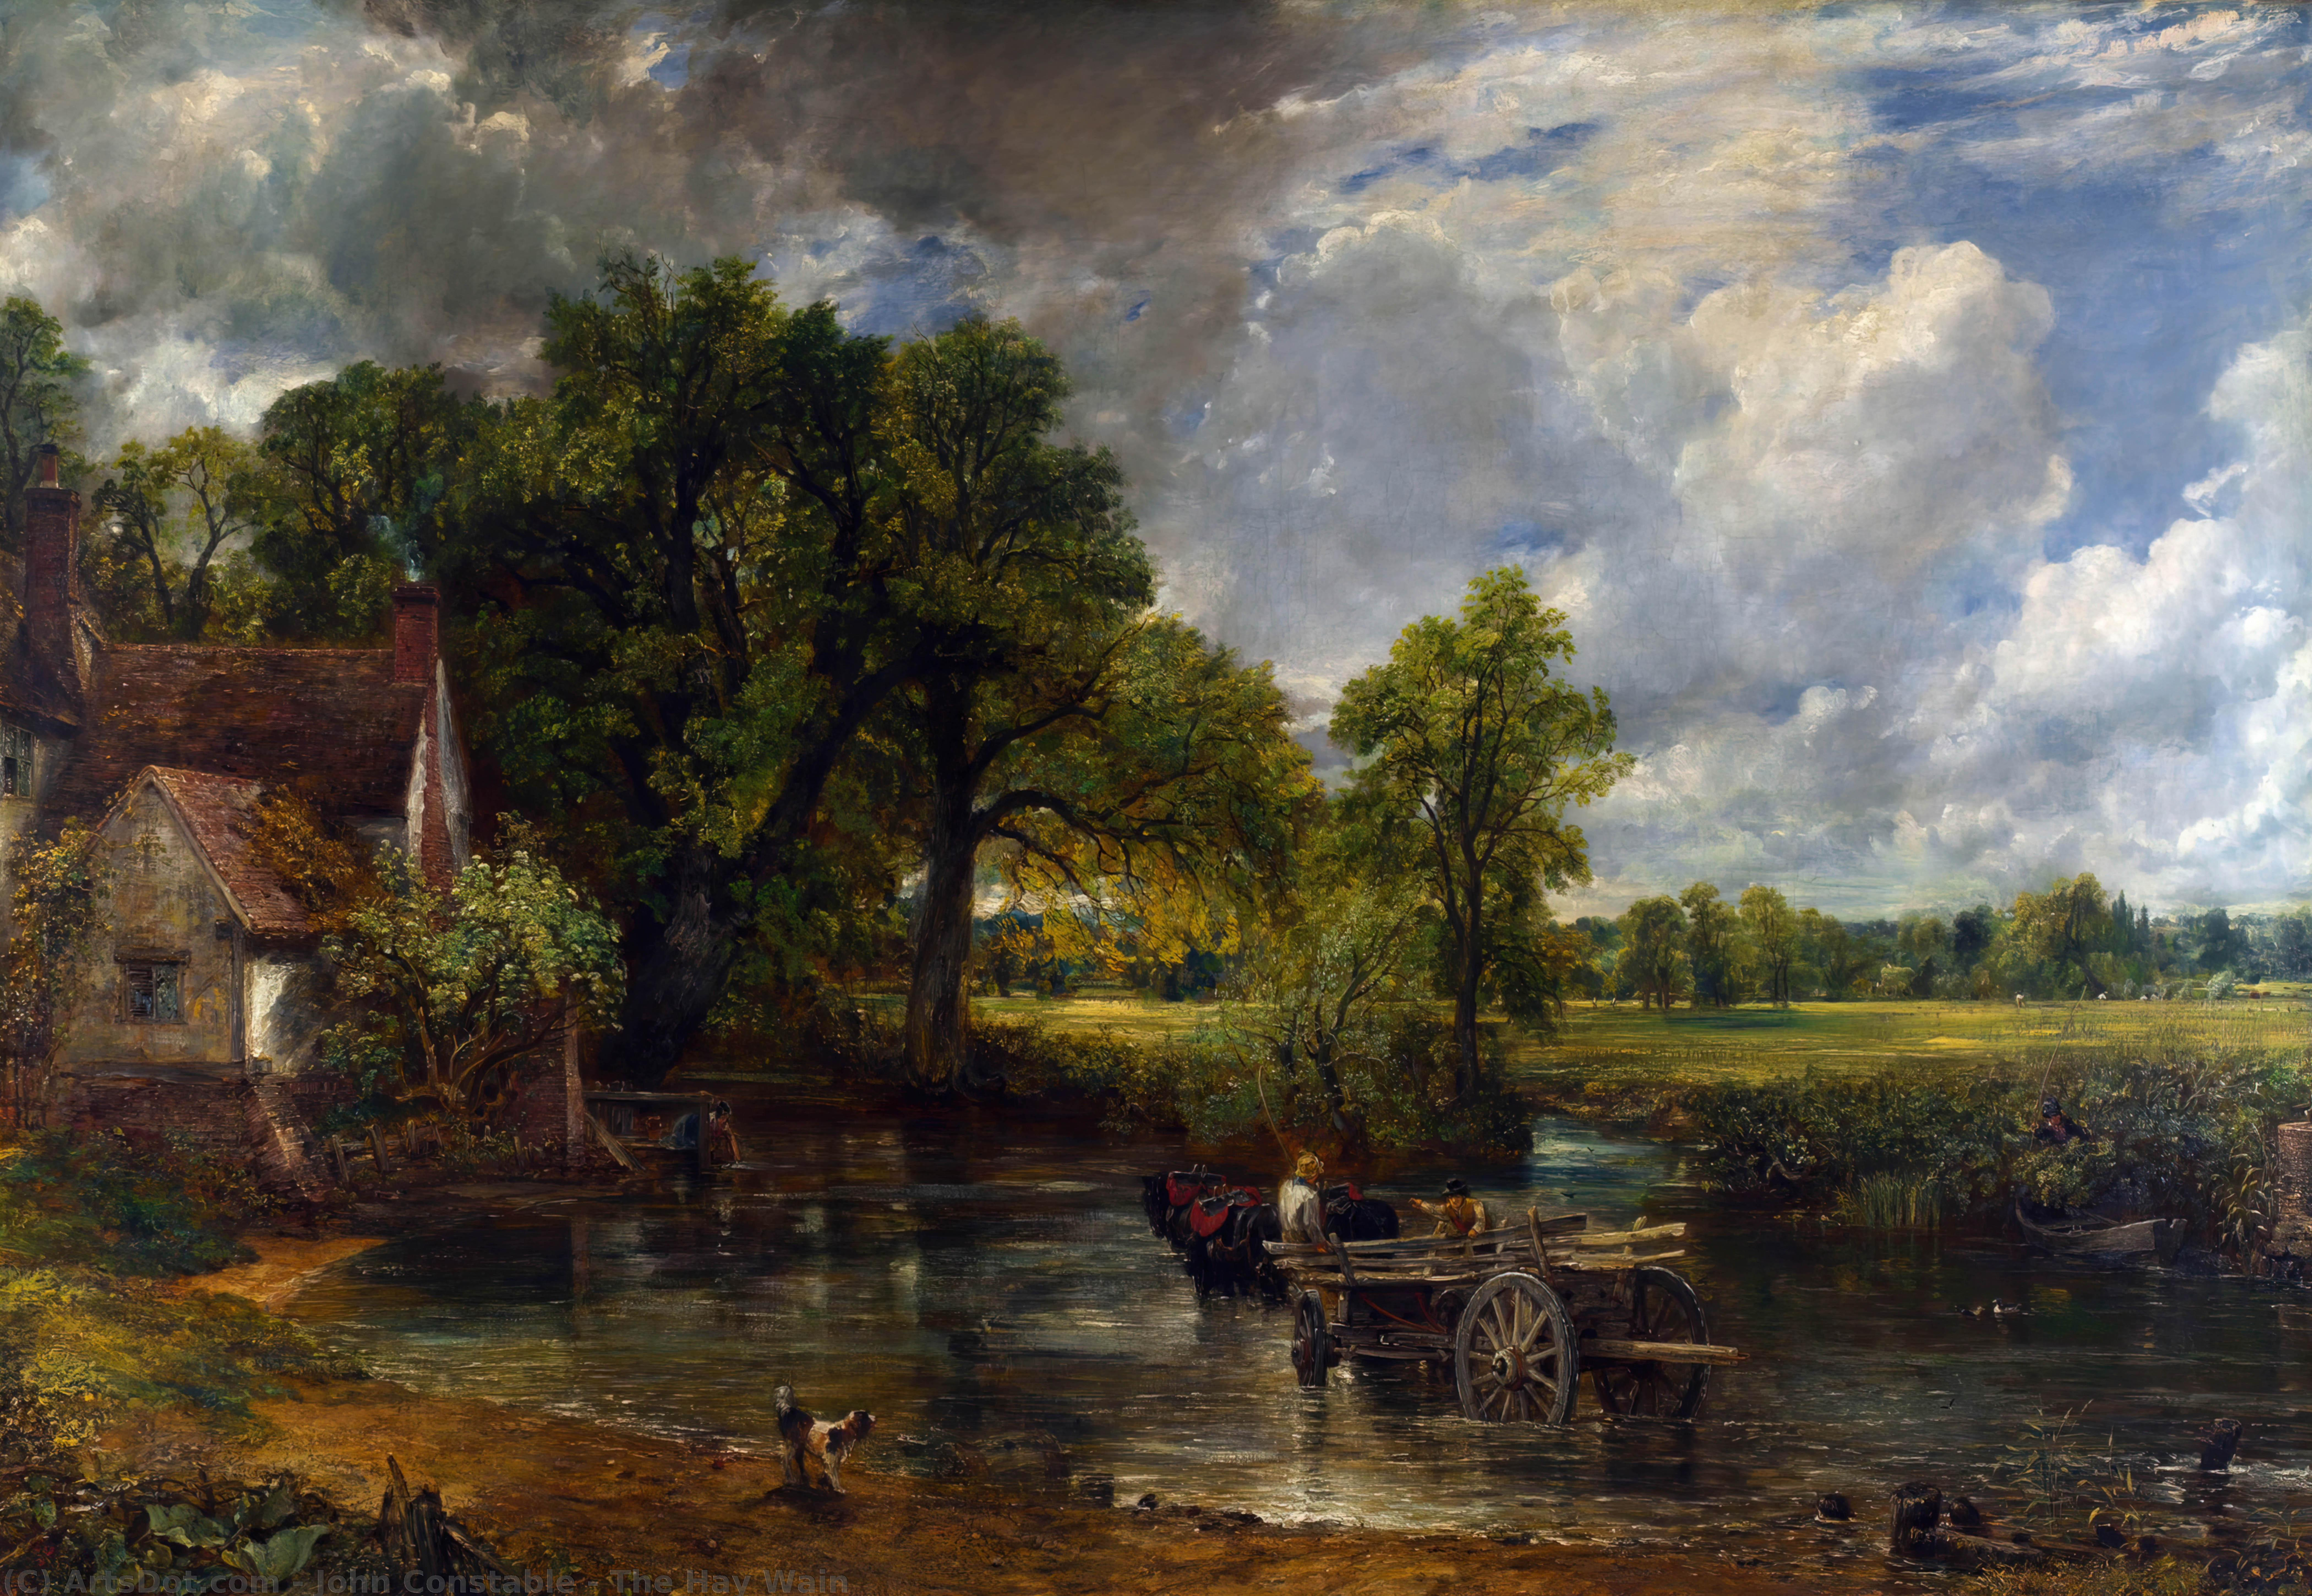 Order Art Reproduction : The Hay Wain, 1821 by John Constable (1776-1837, United Kingdom) | ArtsDot.com